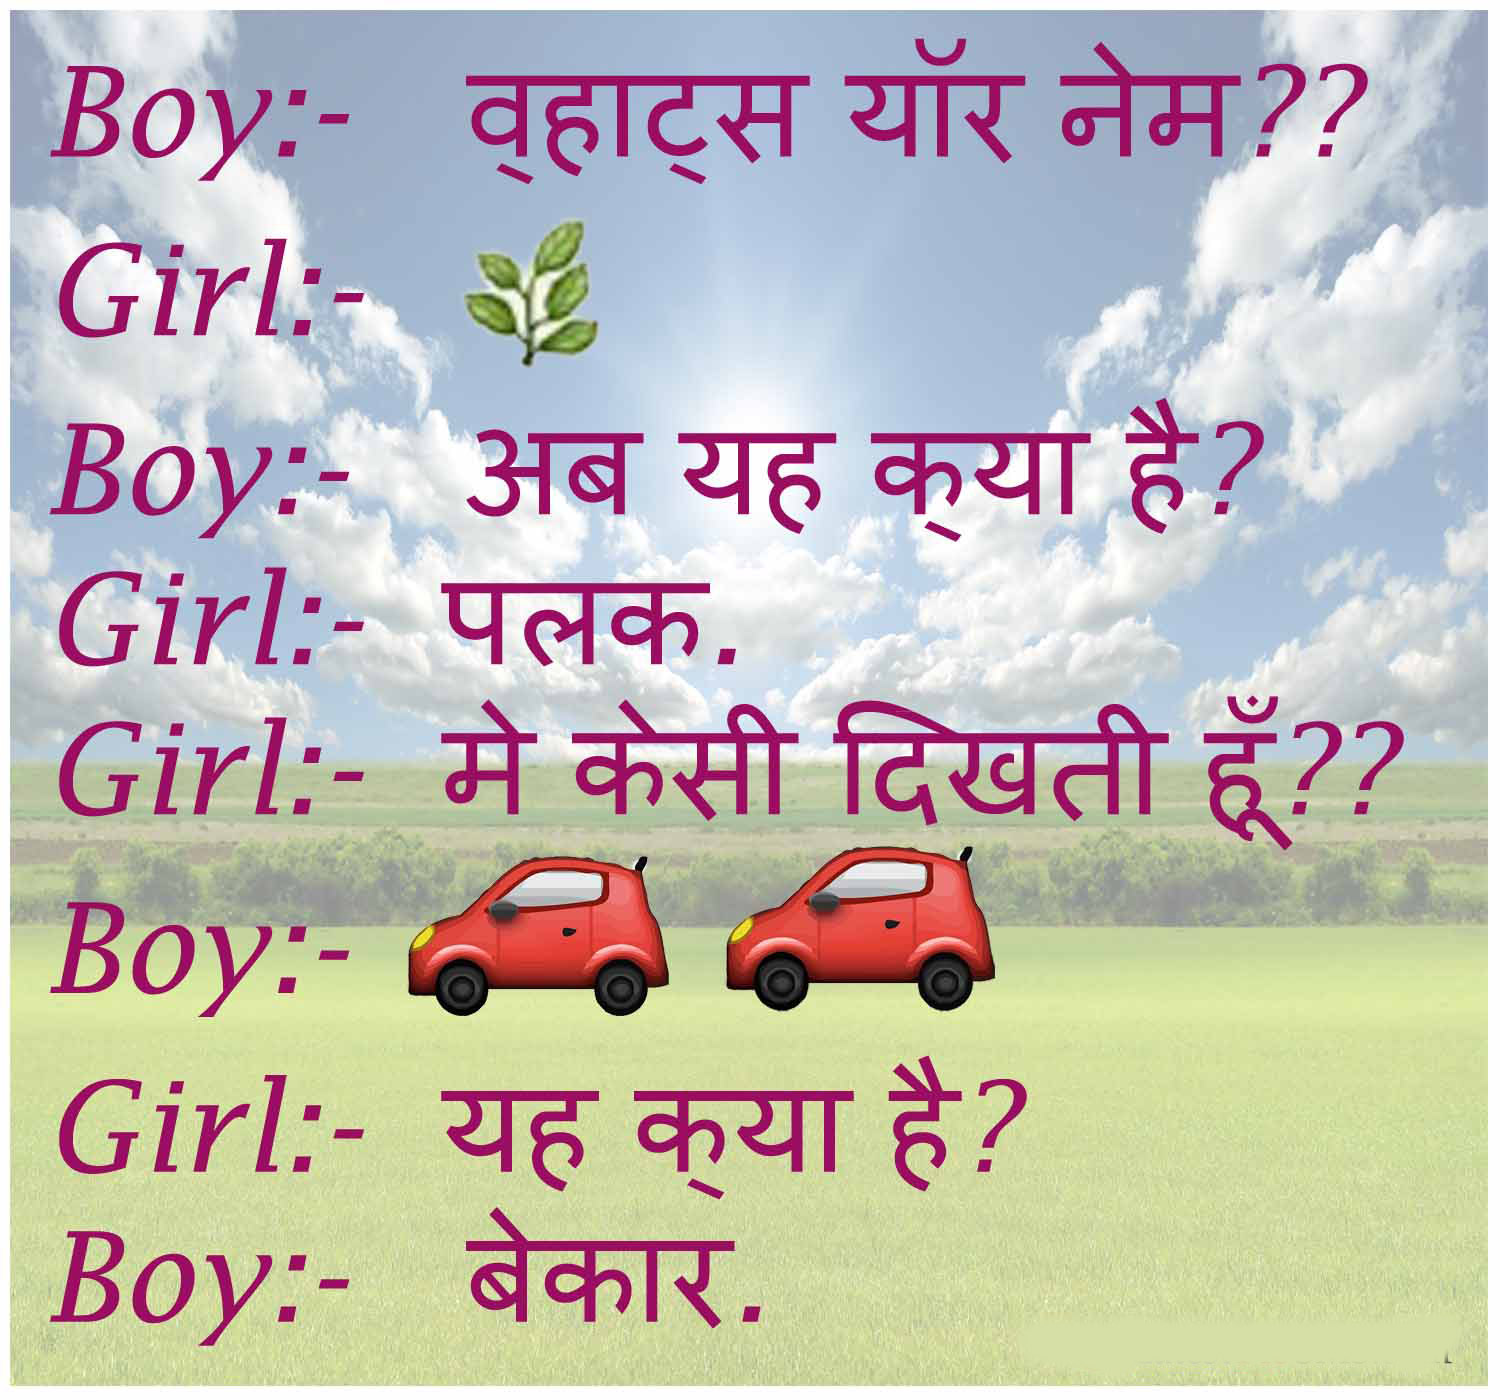 Boy Girl jokes In Hindi Images Wallpaper Pictures Photo Pics HD Download